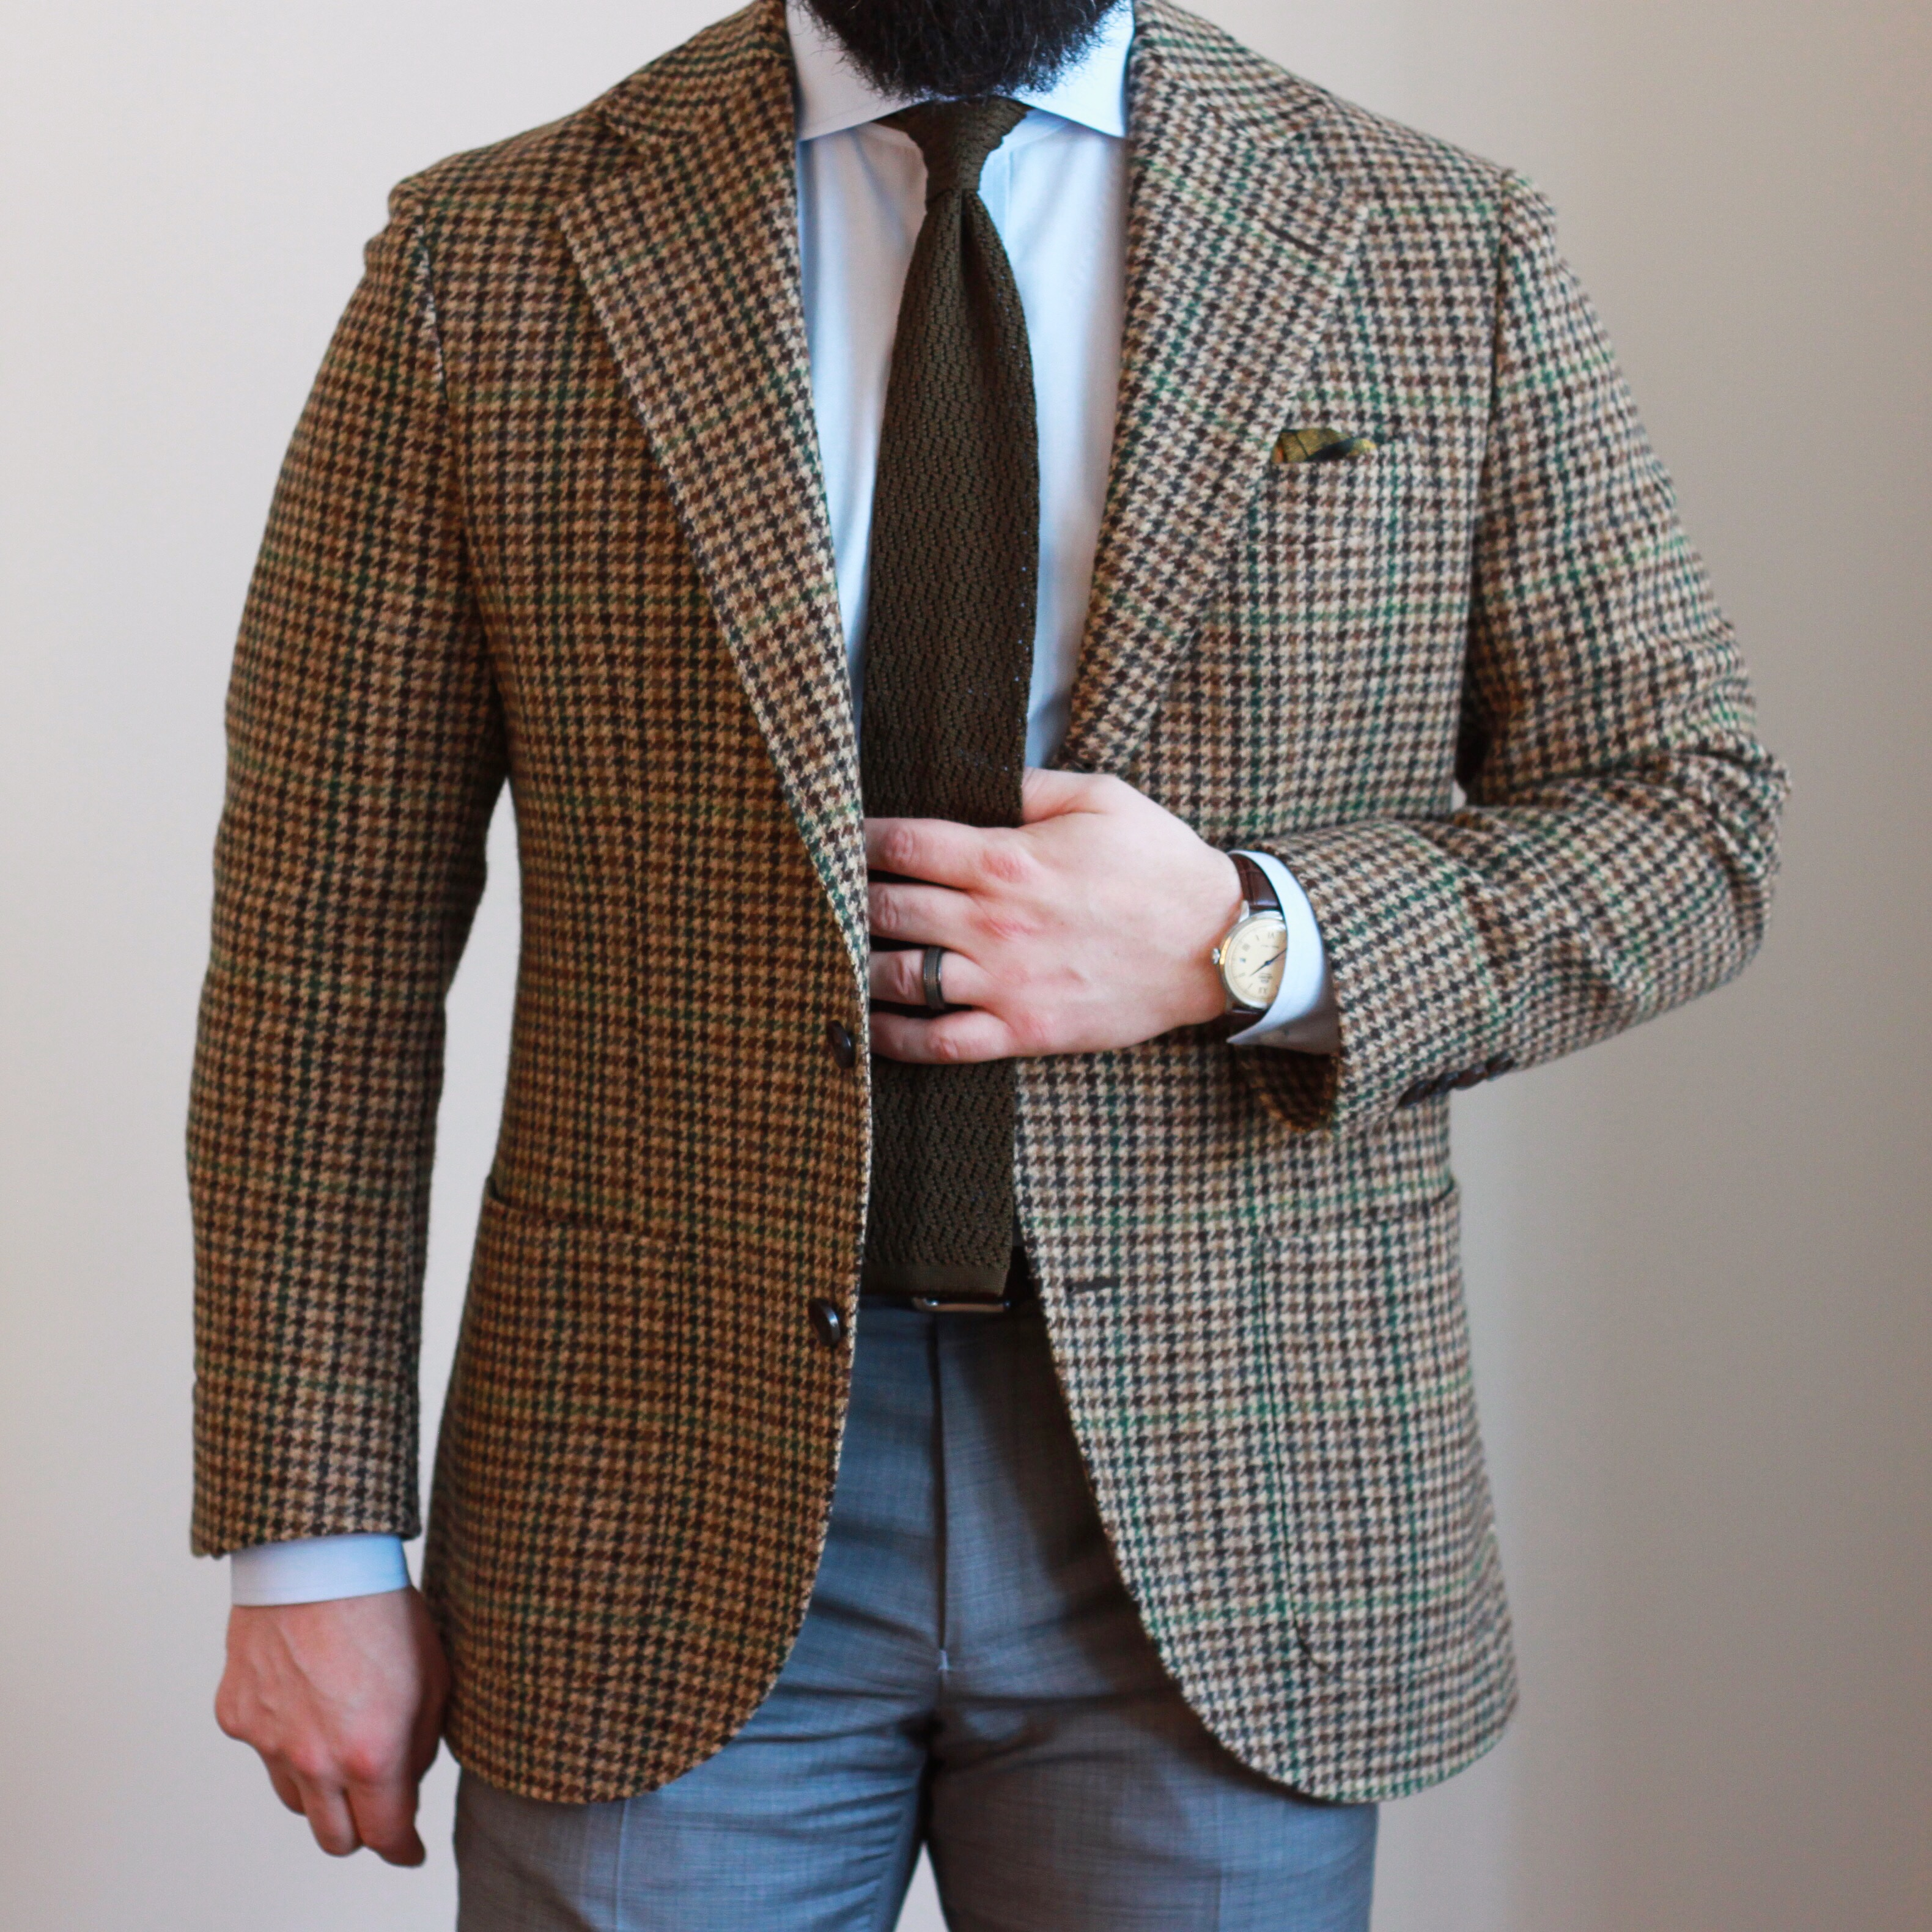 guncheck, tweed, sport coat, spier mackay, olive zig zag knit tie, oxford rowe, pocket square, kent wang, what i wore